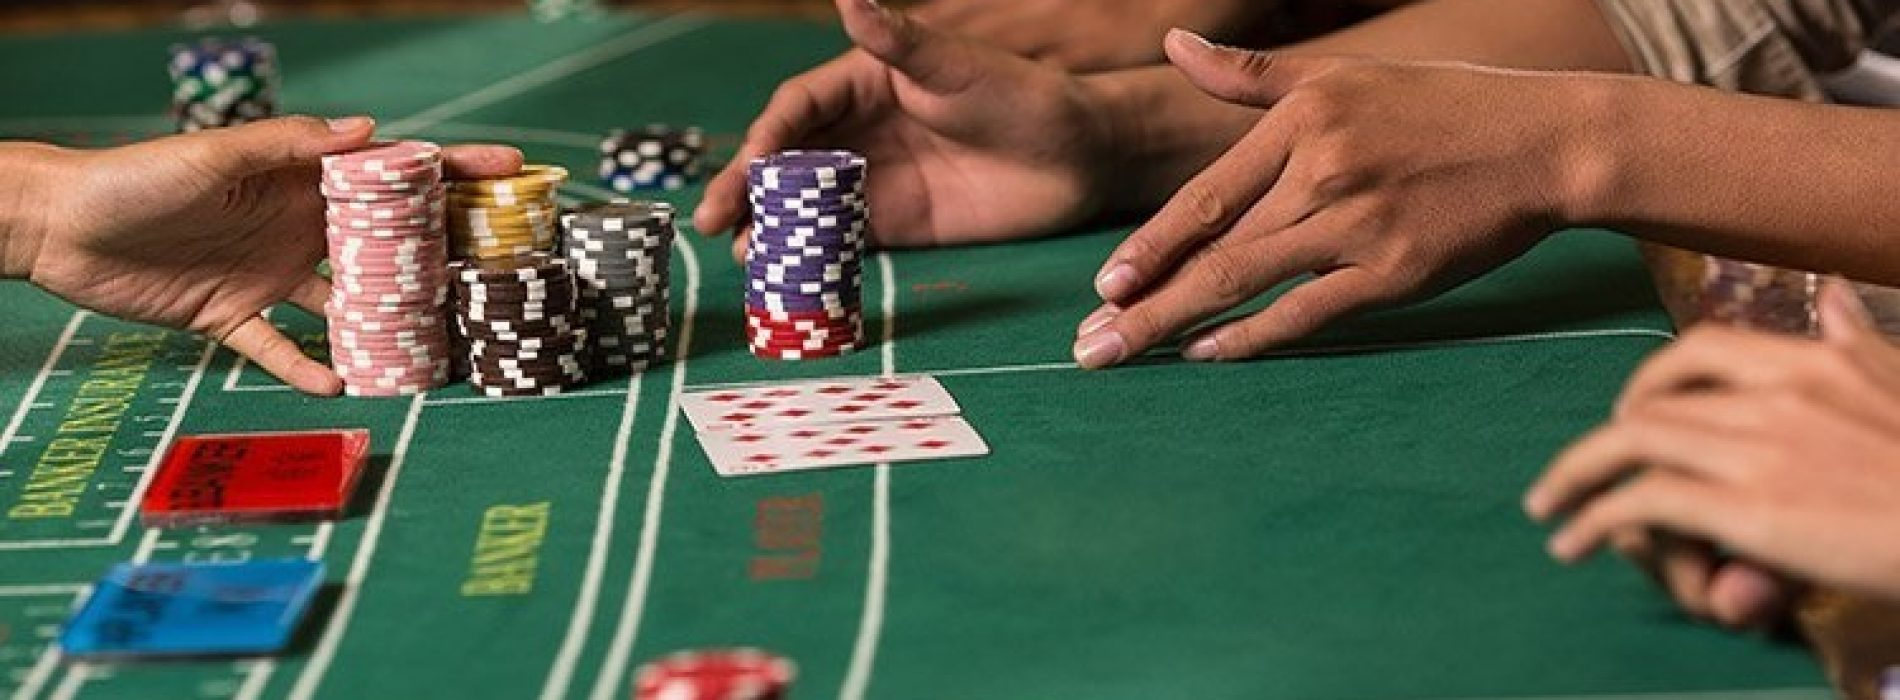 Online Baccarat Is Better Than Land-Based Baccarat! How? Let's Tell You